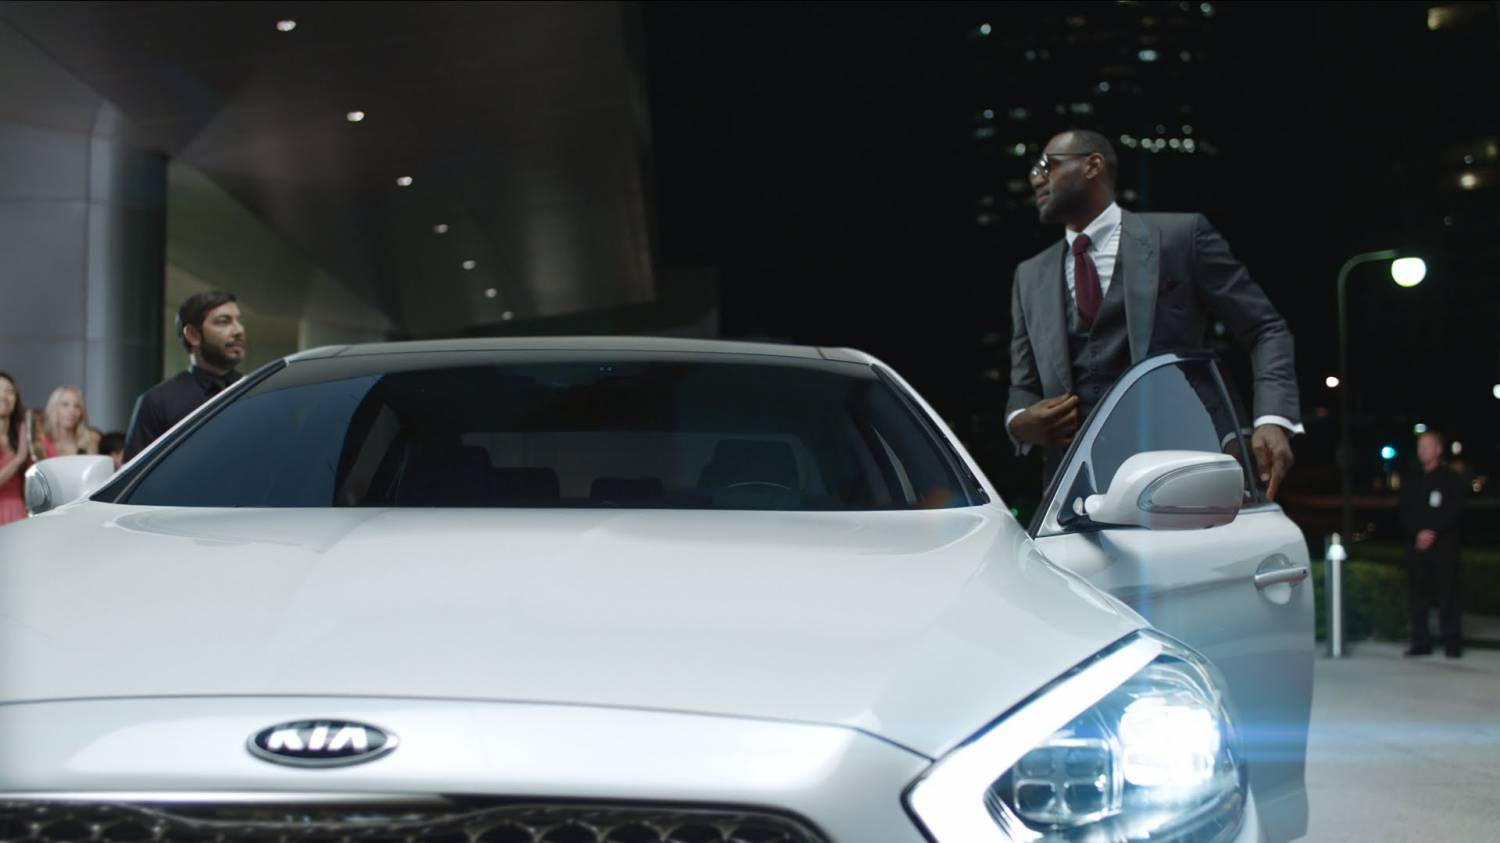 Музыка и видеоролик из рекламы Kia K900 - Valet (LeBron James)